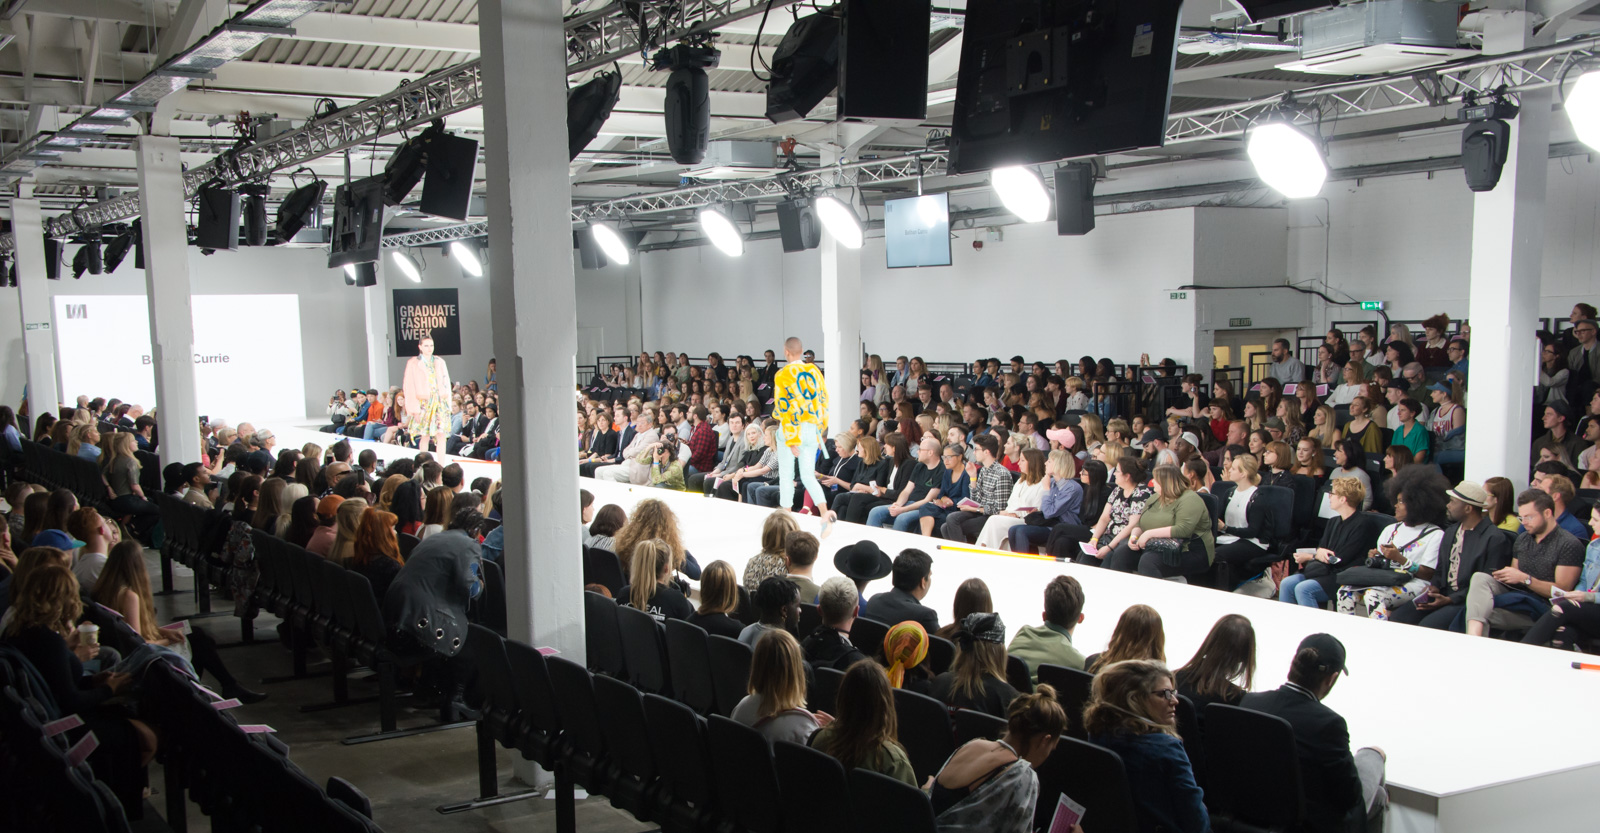 manchester crowd and catwalk 050617 3 image by tina mayr_.jpg